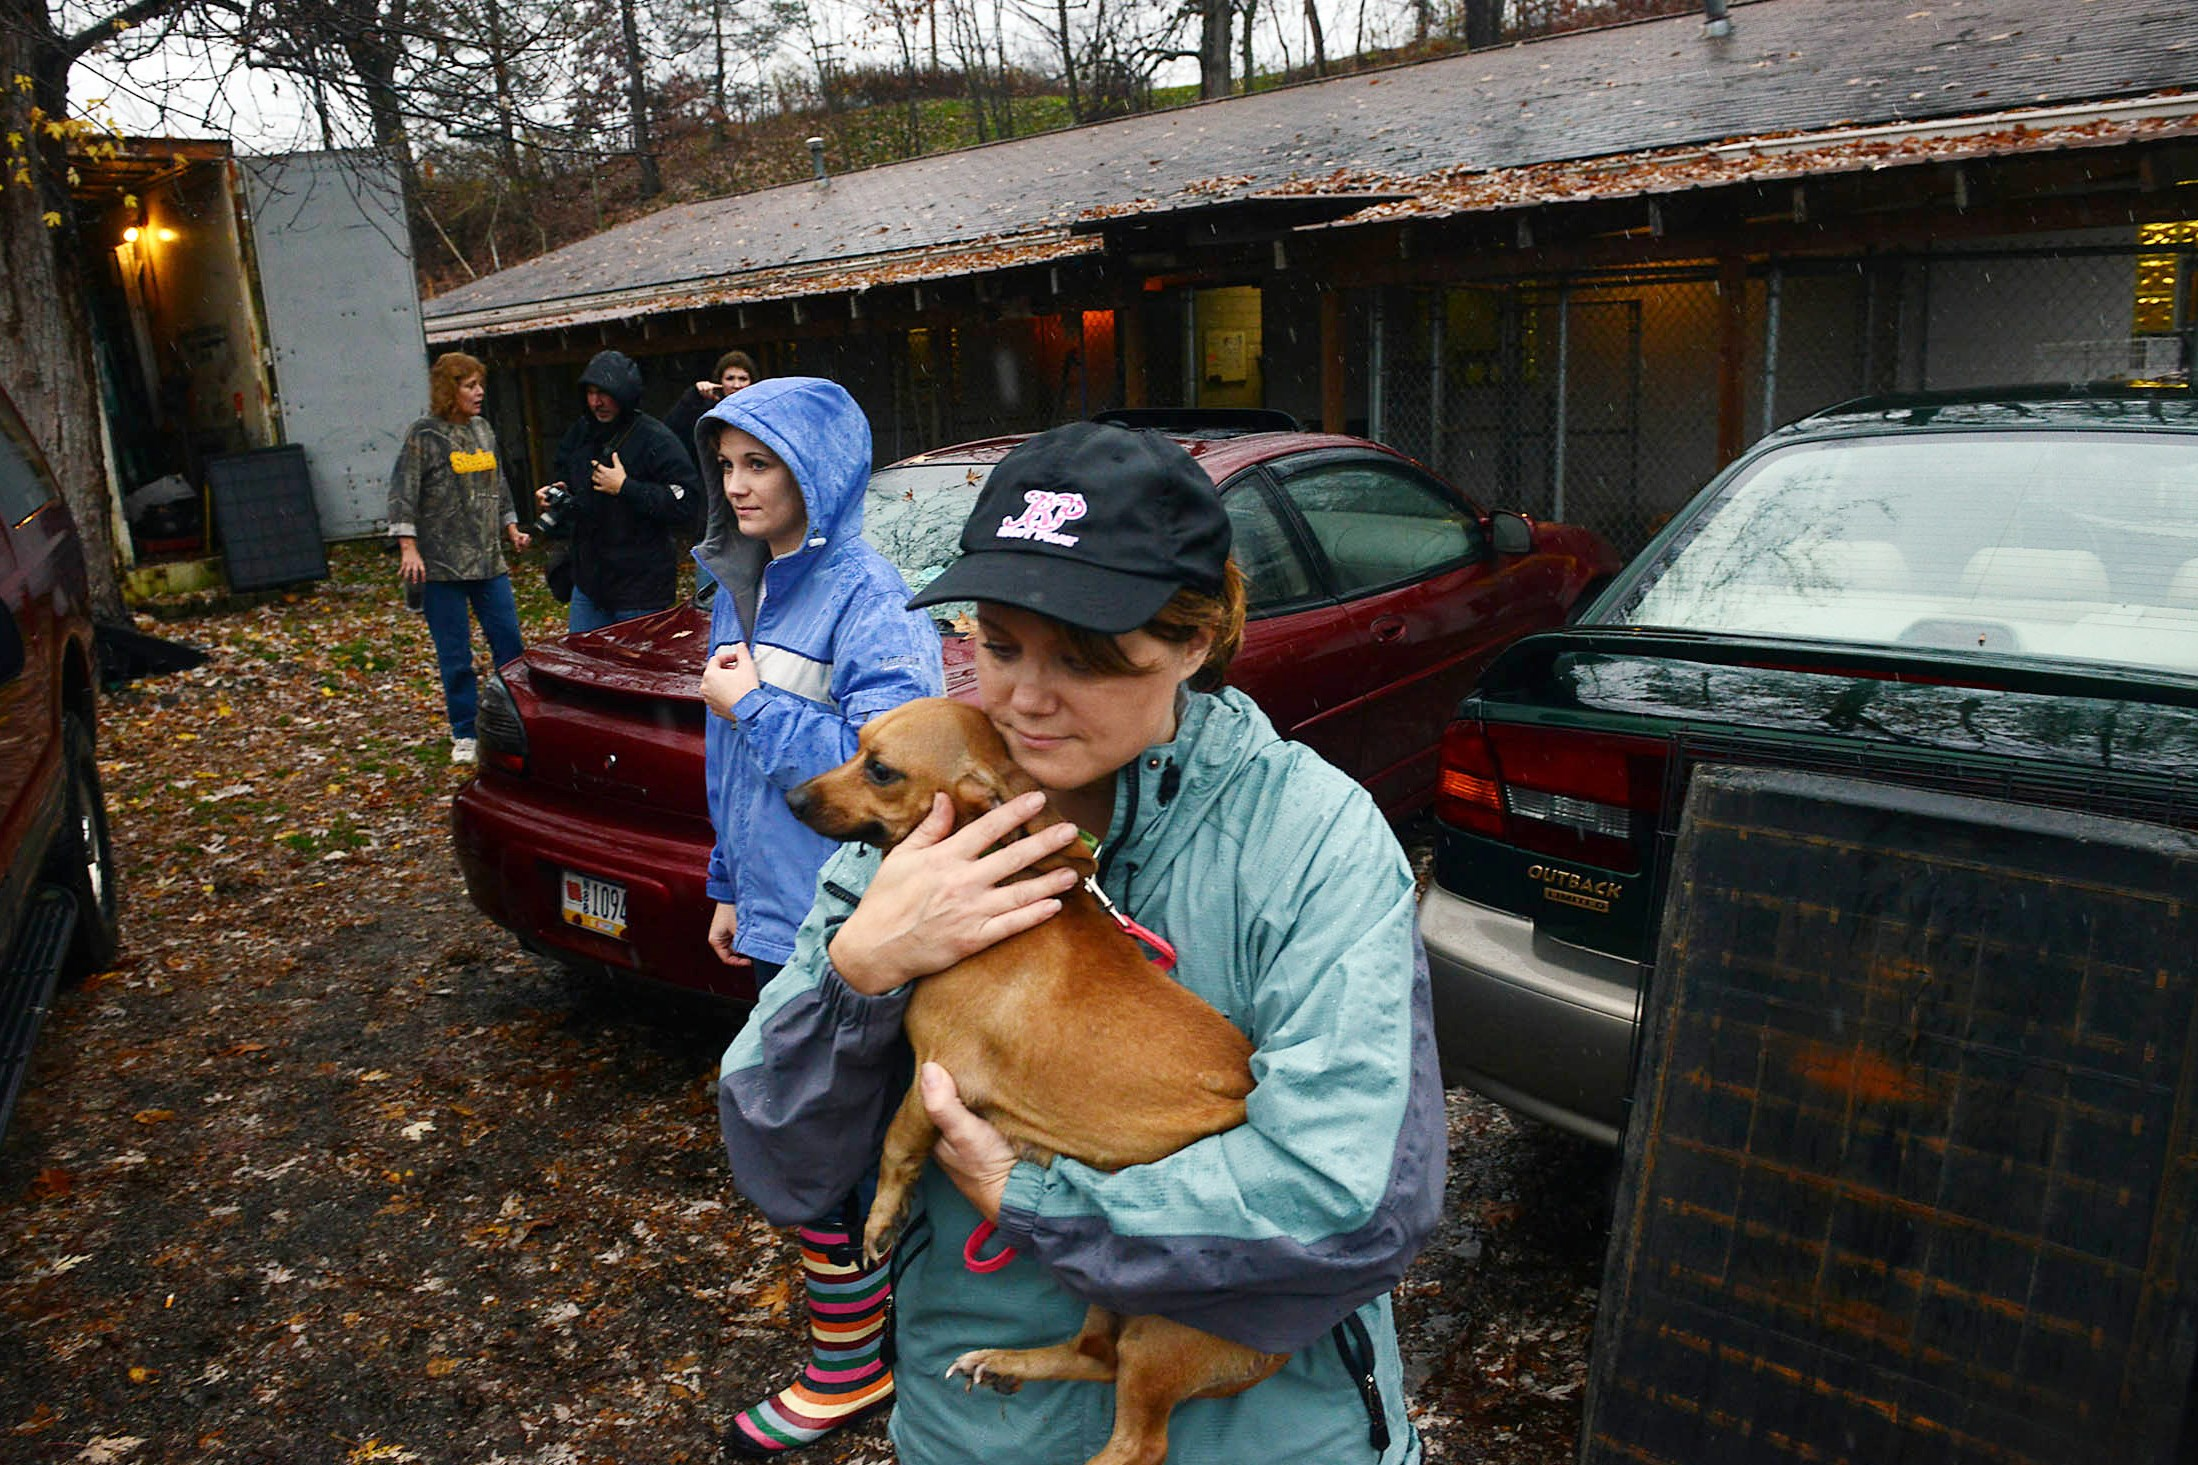 Debbi Reefer carries a dachshund as volunteers and staff of Orphans of the Storm, an animal shelter in Kittanning, work to evacuate animals in anticipation of possible flooding from Hurricane Sandy in 2012.